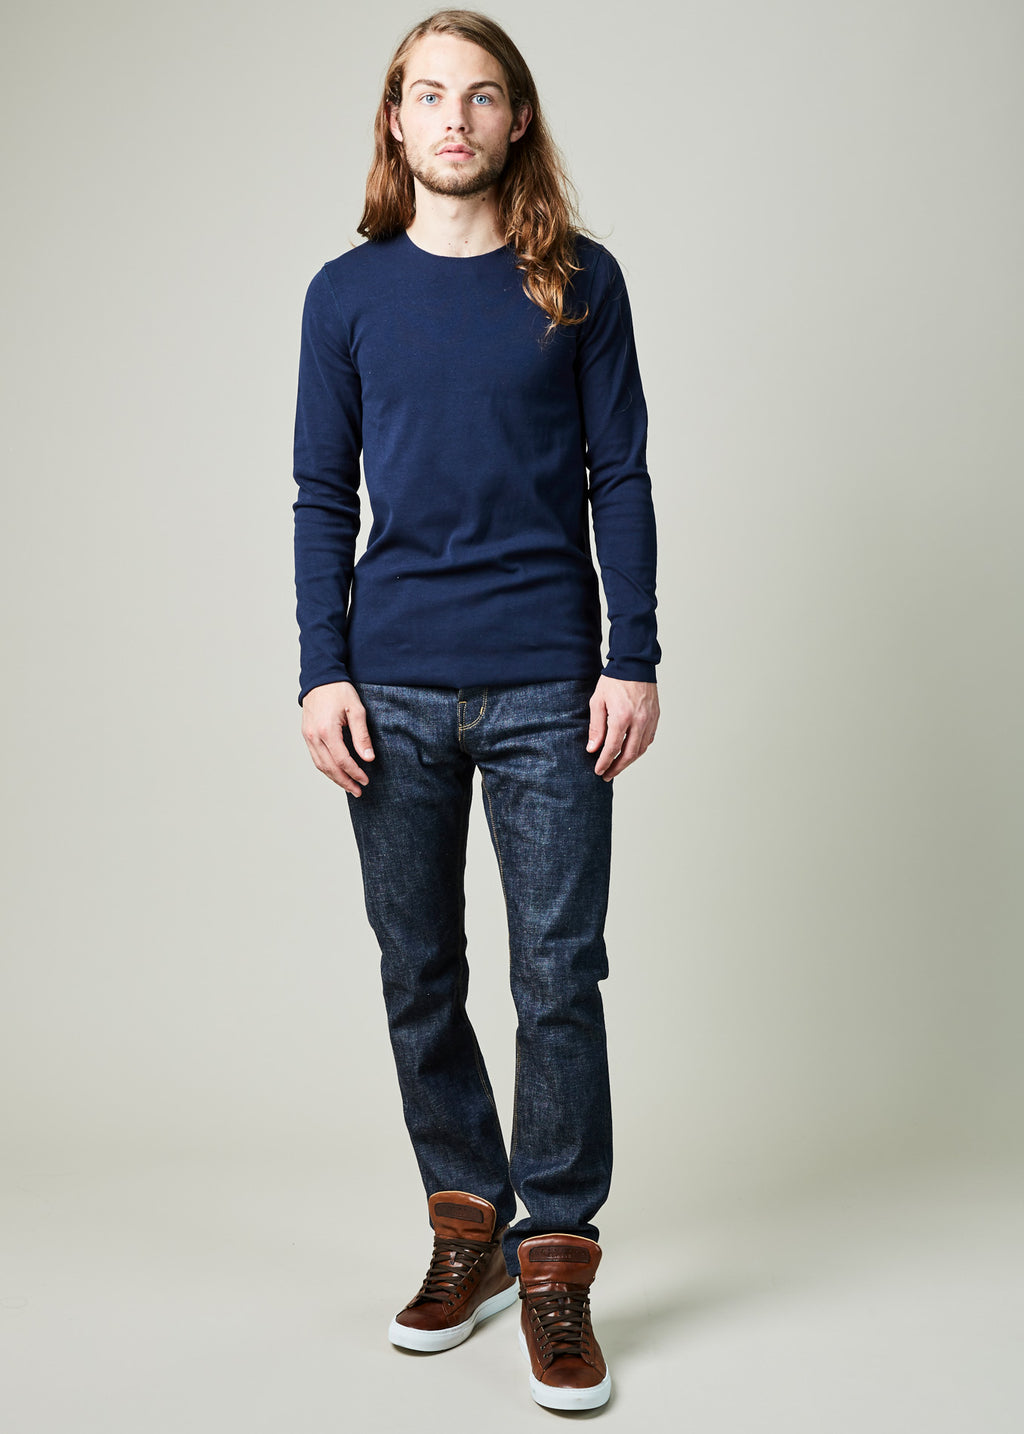 Undee Long Sleeve Shirt